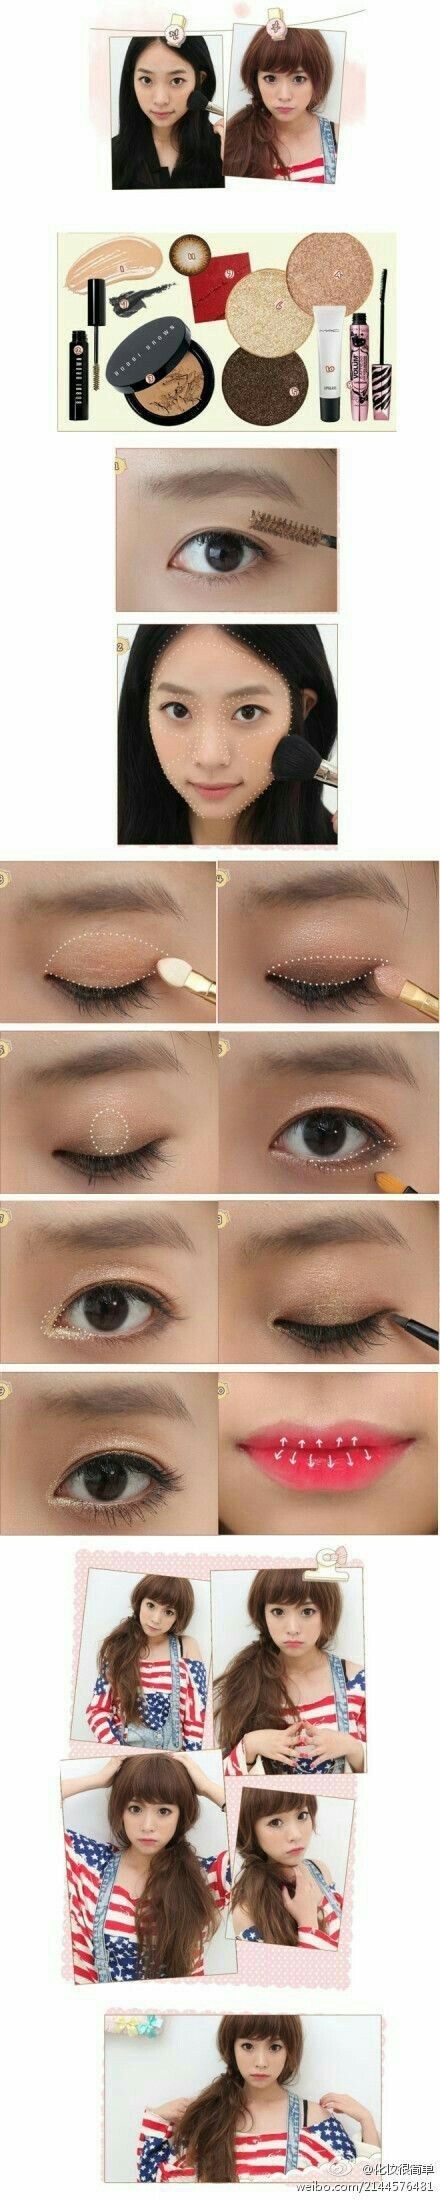 best headtotoe images on pinterest make up looks hair dos and